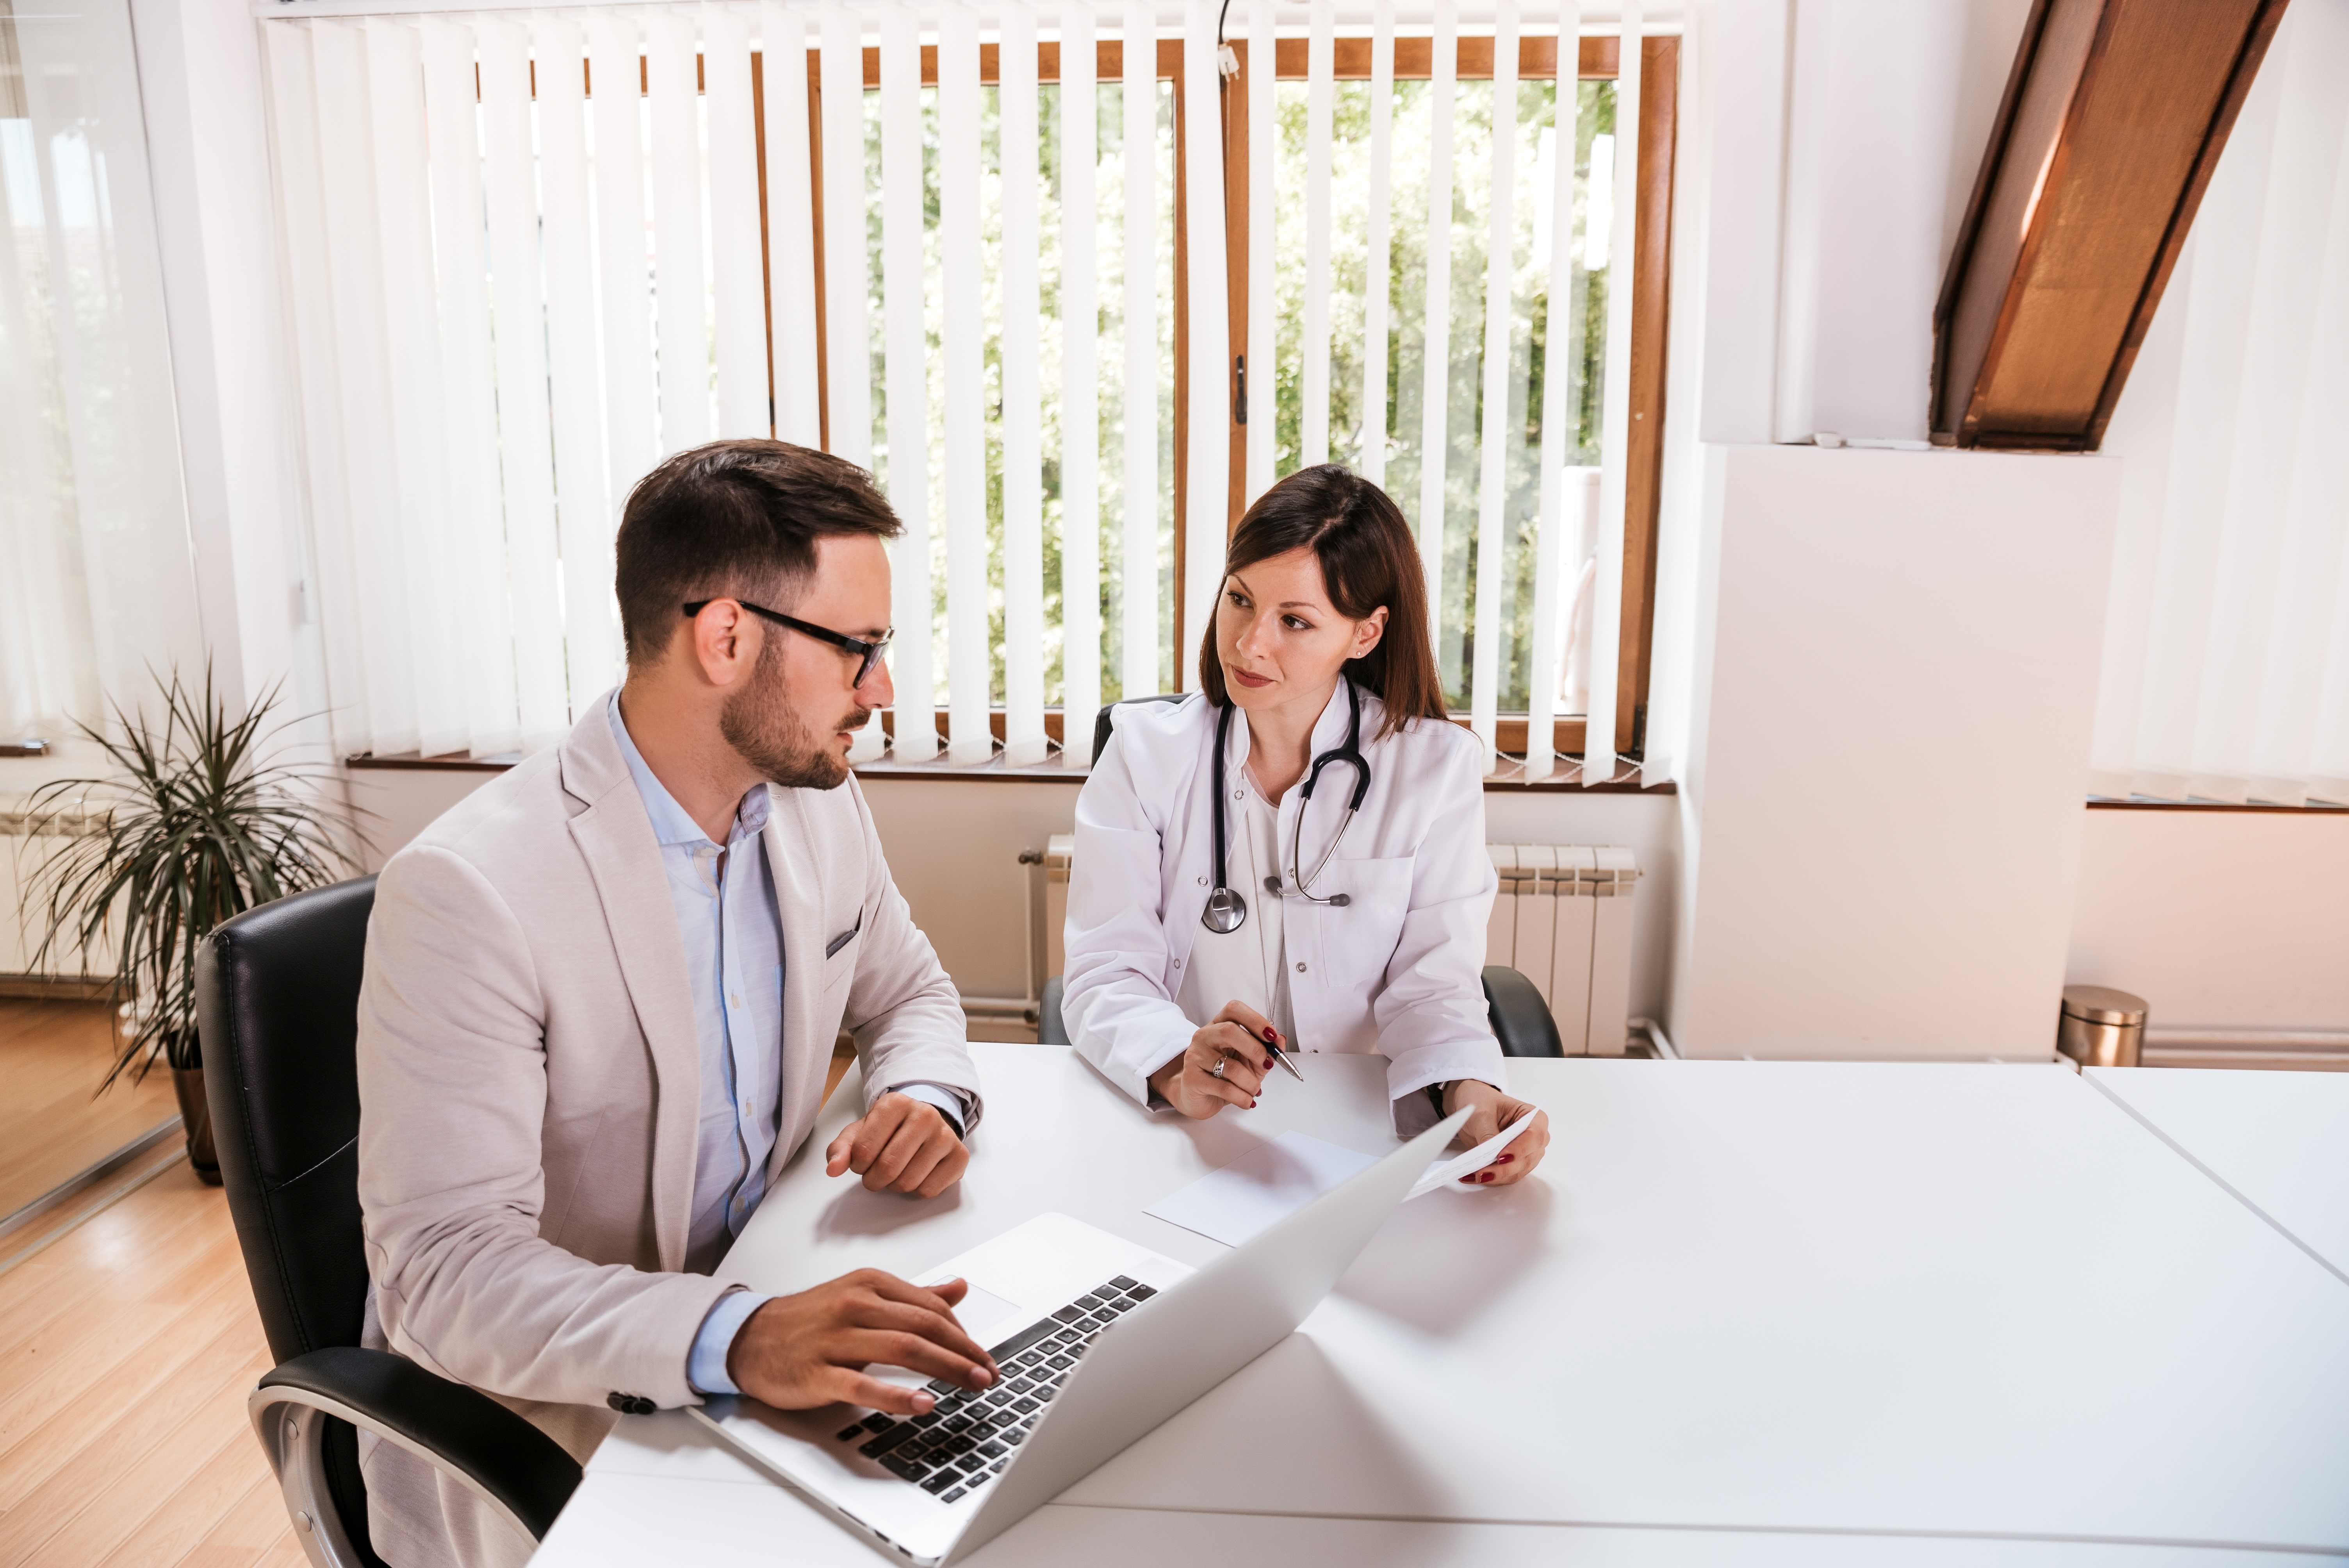 Female-doctor-discussing-with-manager.-966280470_6016x4016